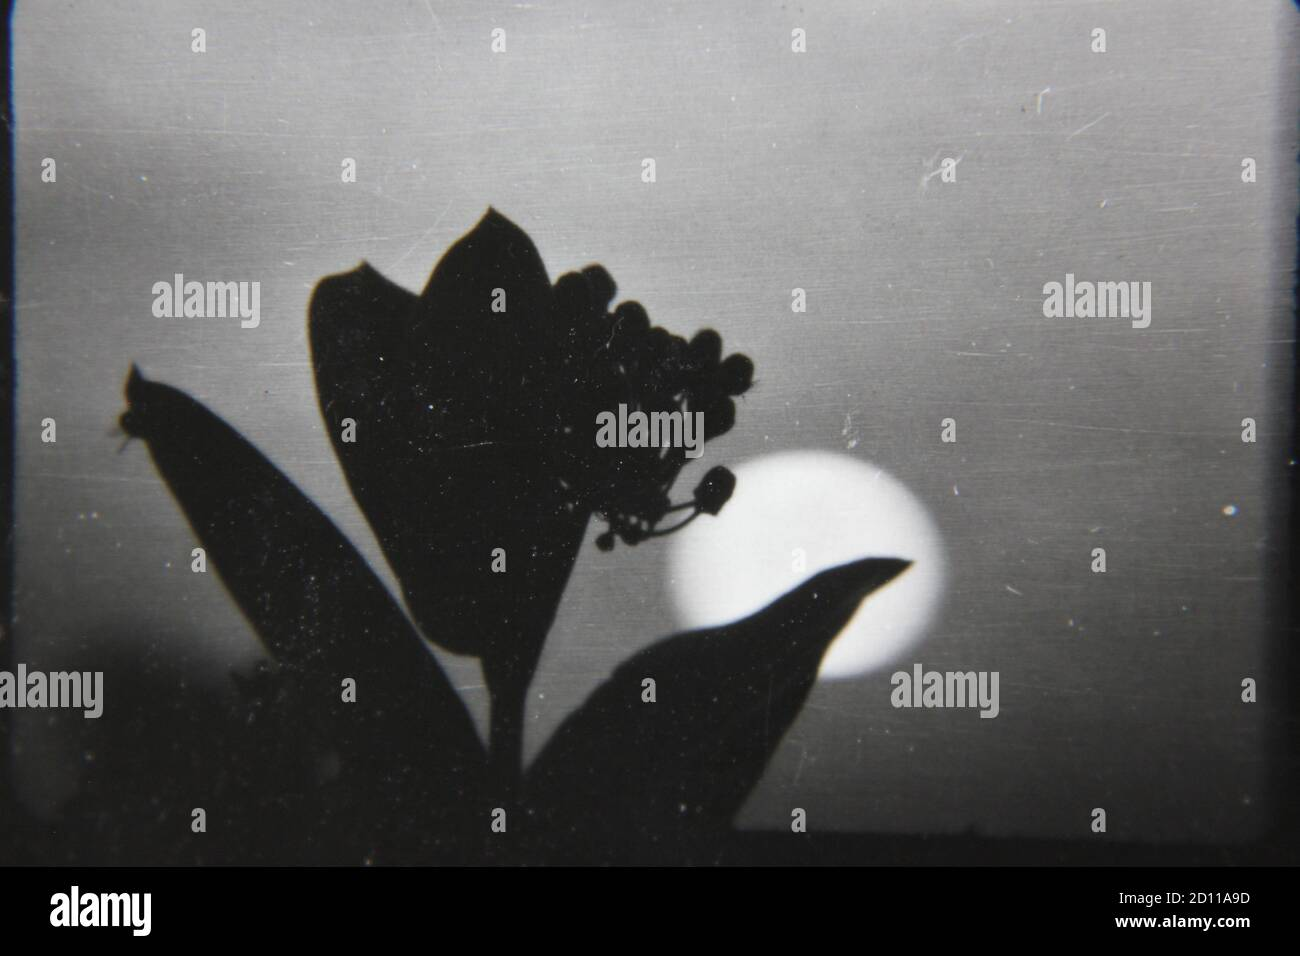 Fine 1970s vintage black and white photography of the sun setting behind a flower in full bloom. Stock Photo